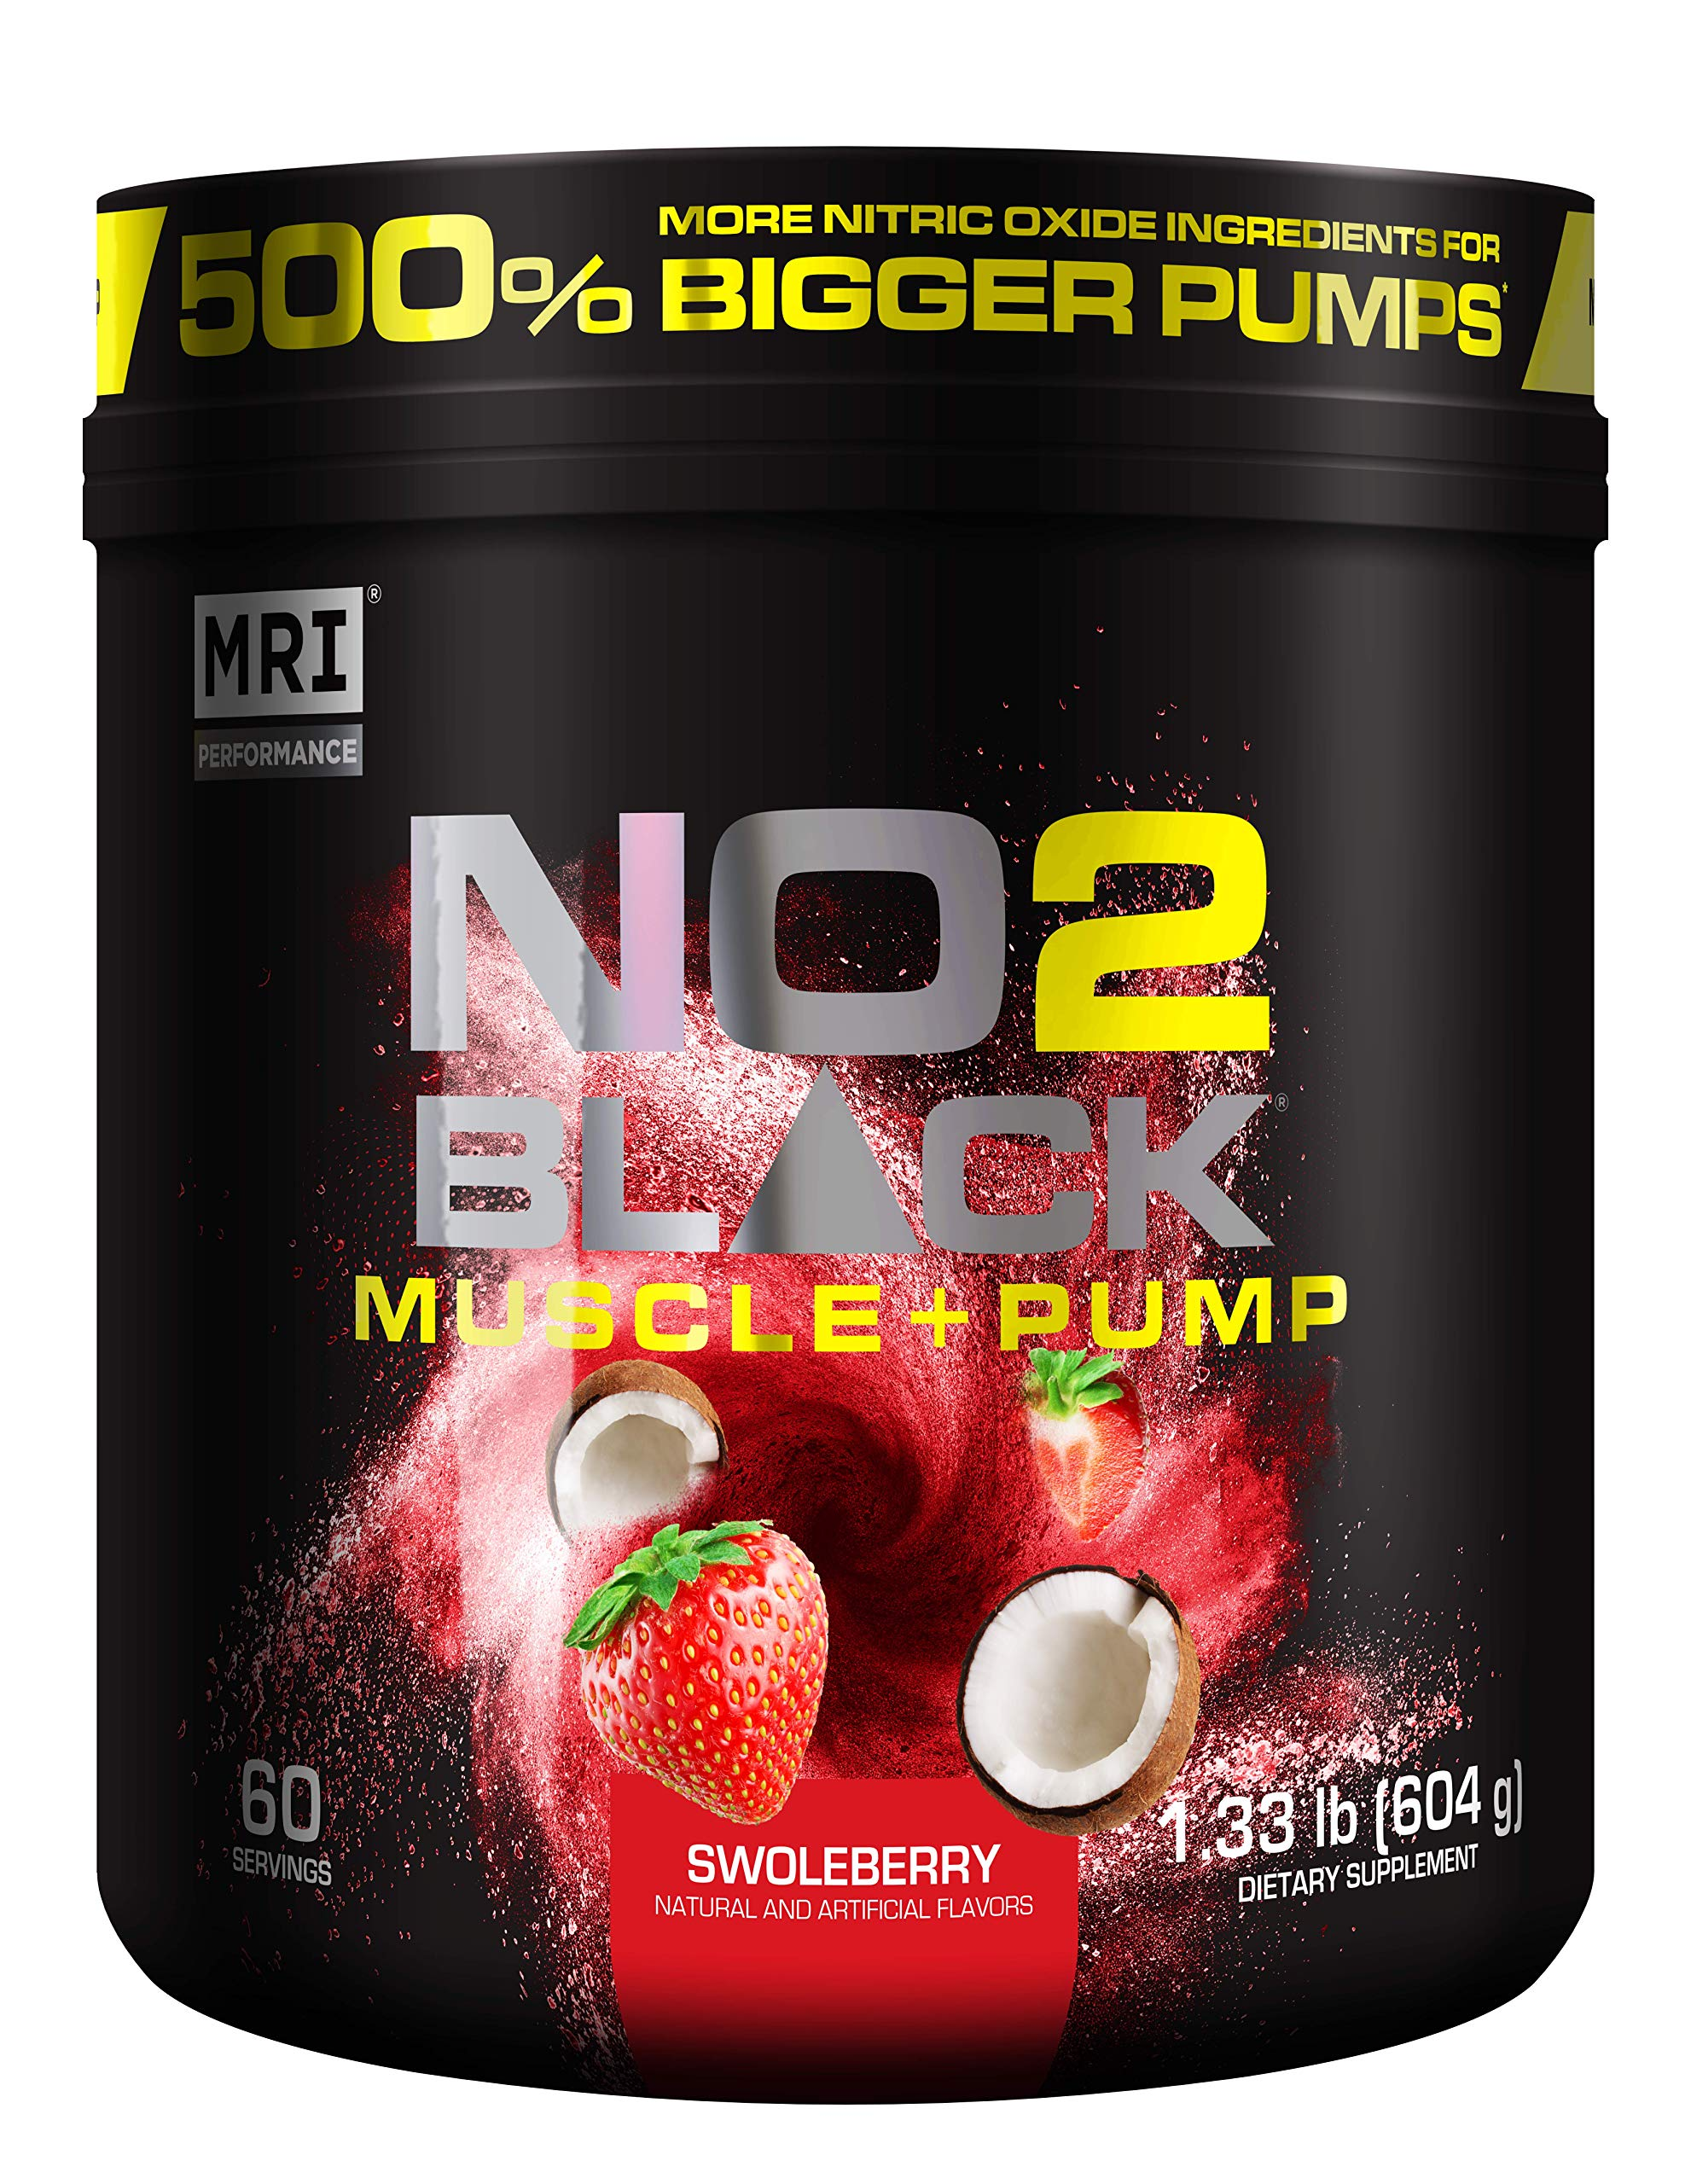 MRI NO2 BLACK Nitric Oxide Supplement for Pump, Muscle Growth, Vascularity & Energy - Powerful NO Booster Pre-Workout with Citrulline + 60 Servings (Swoleberry) by MRI